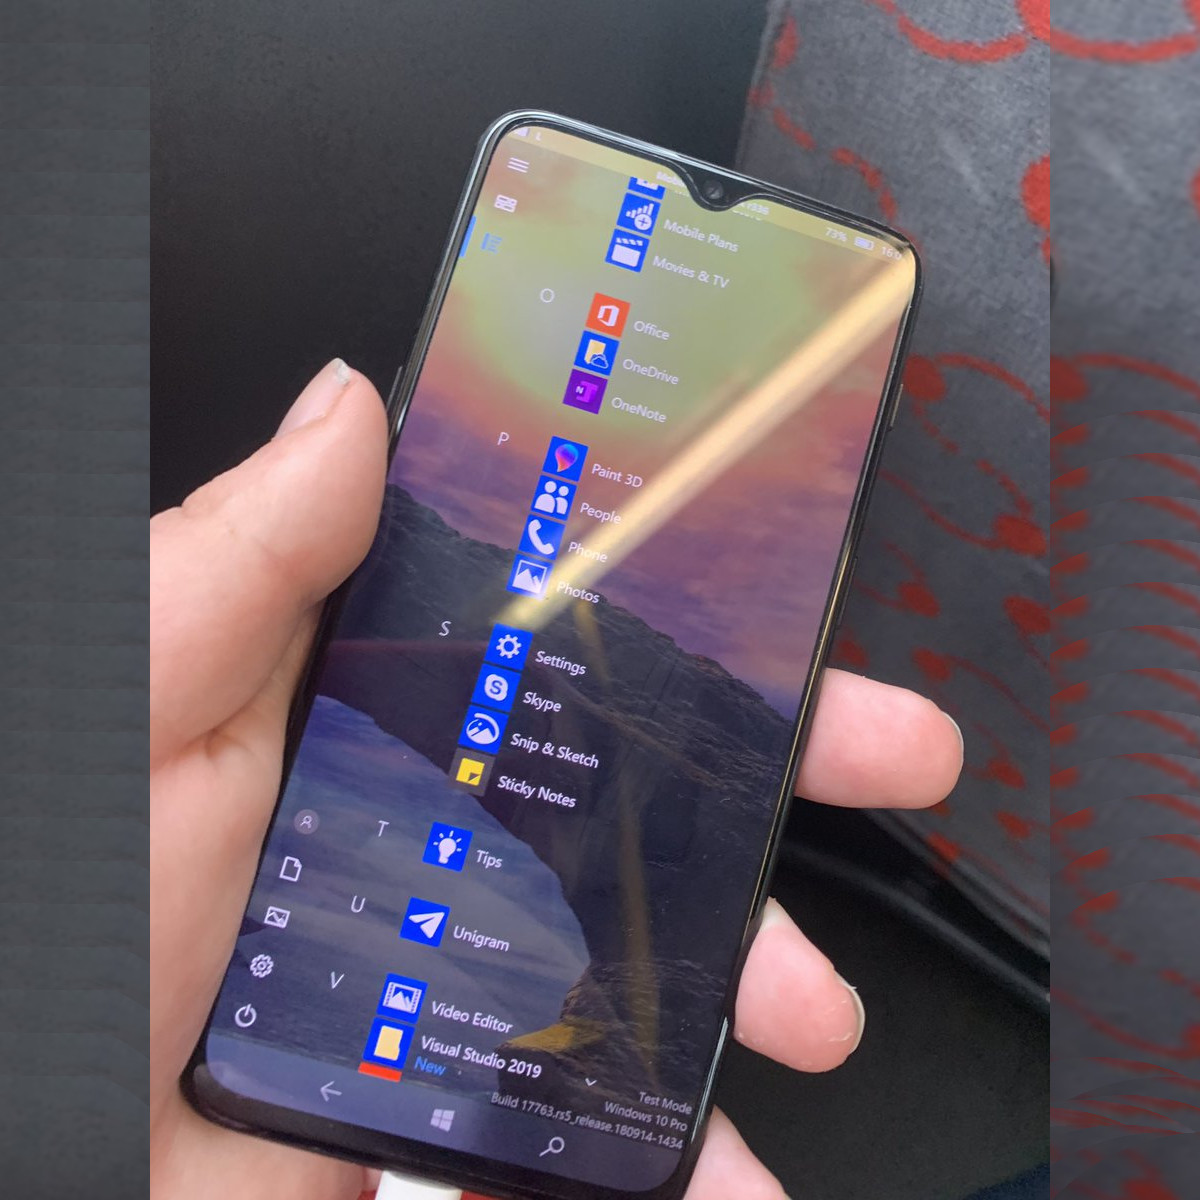 MobileShell for Windows 10 on ARM looks great on the OnePlus 6t